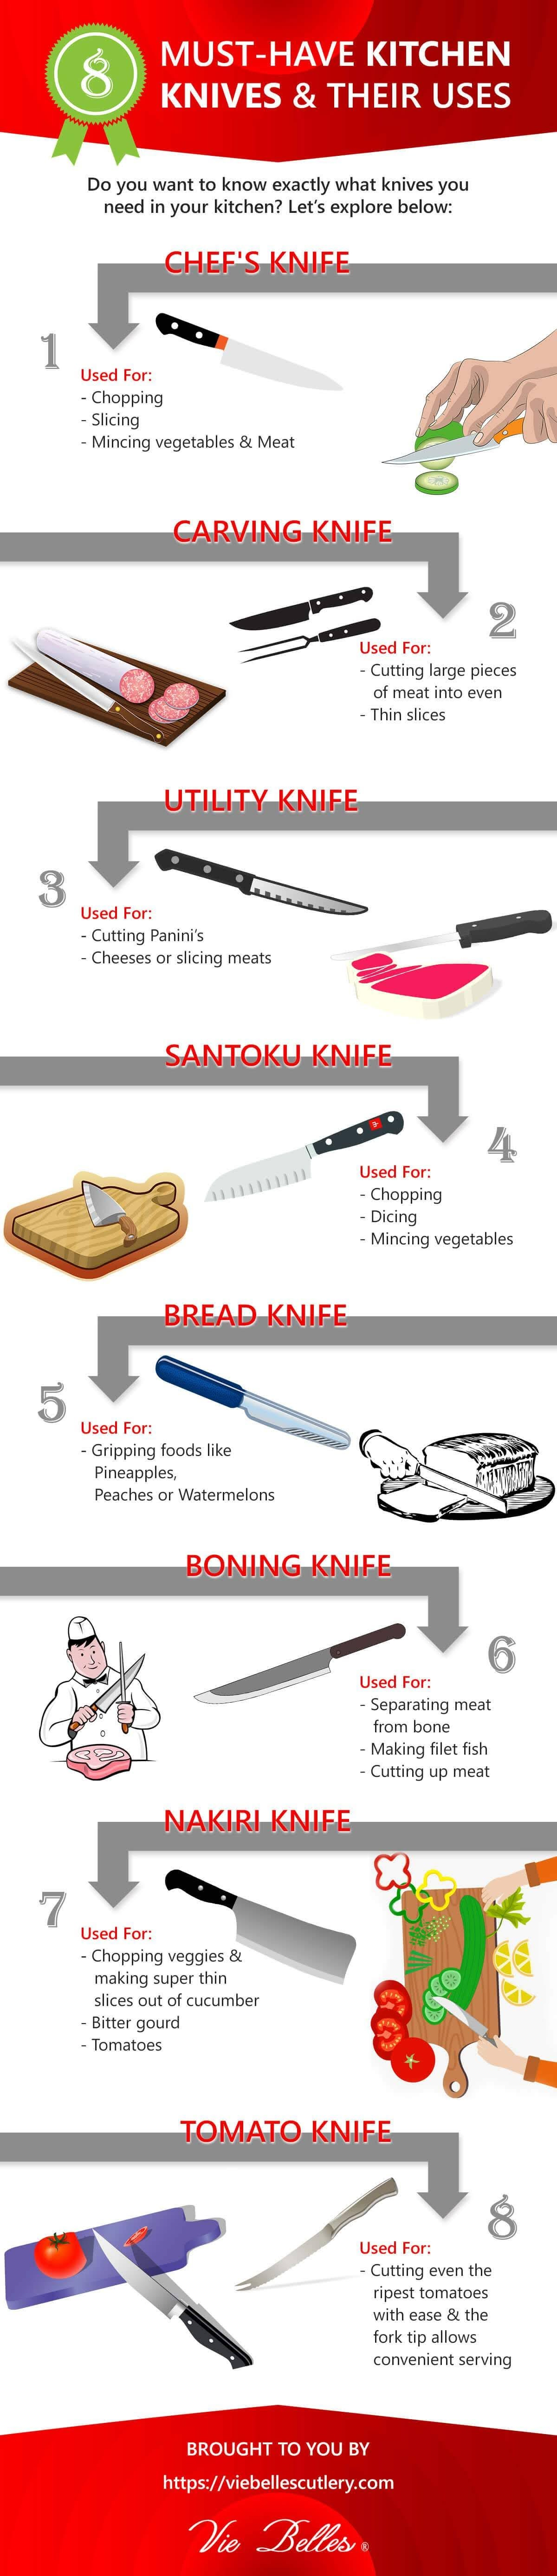 8 Must-Have Kitchen Knives and Their Uses #infographic